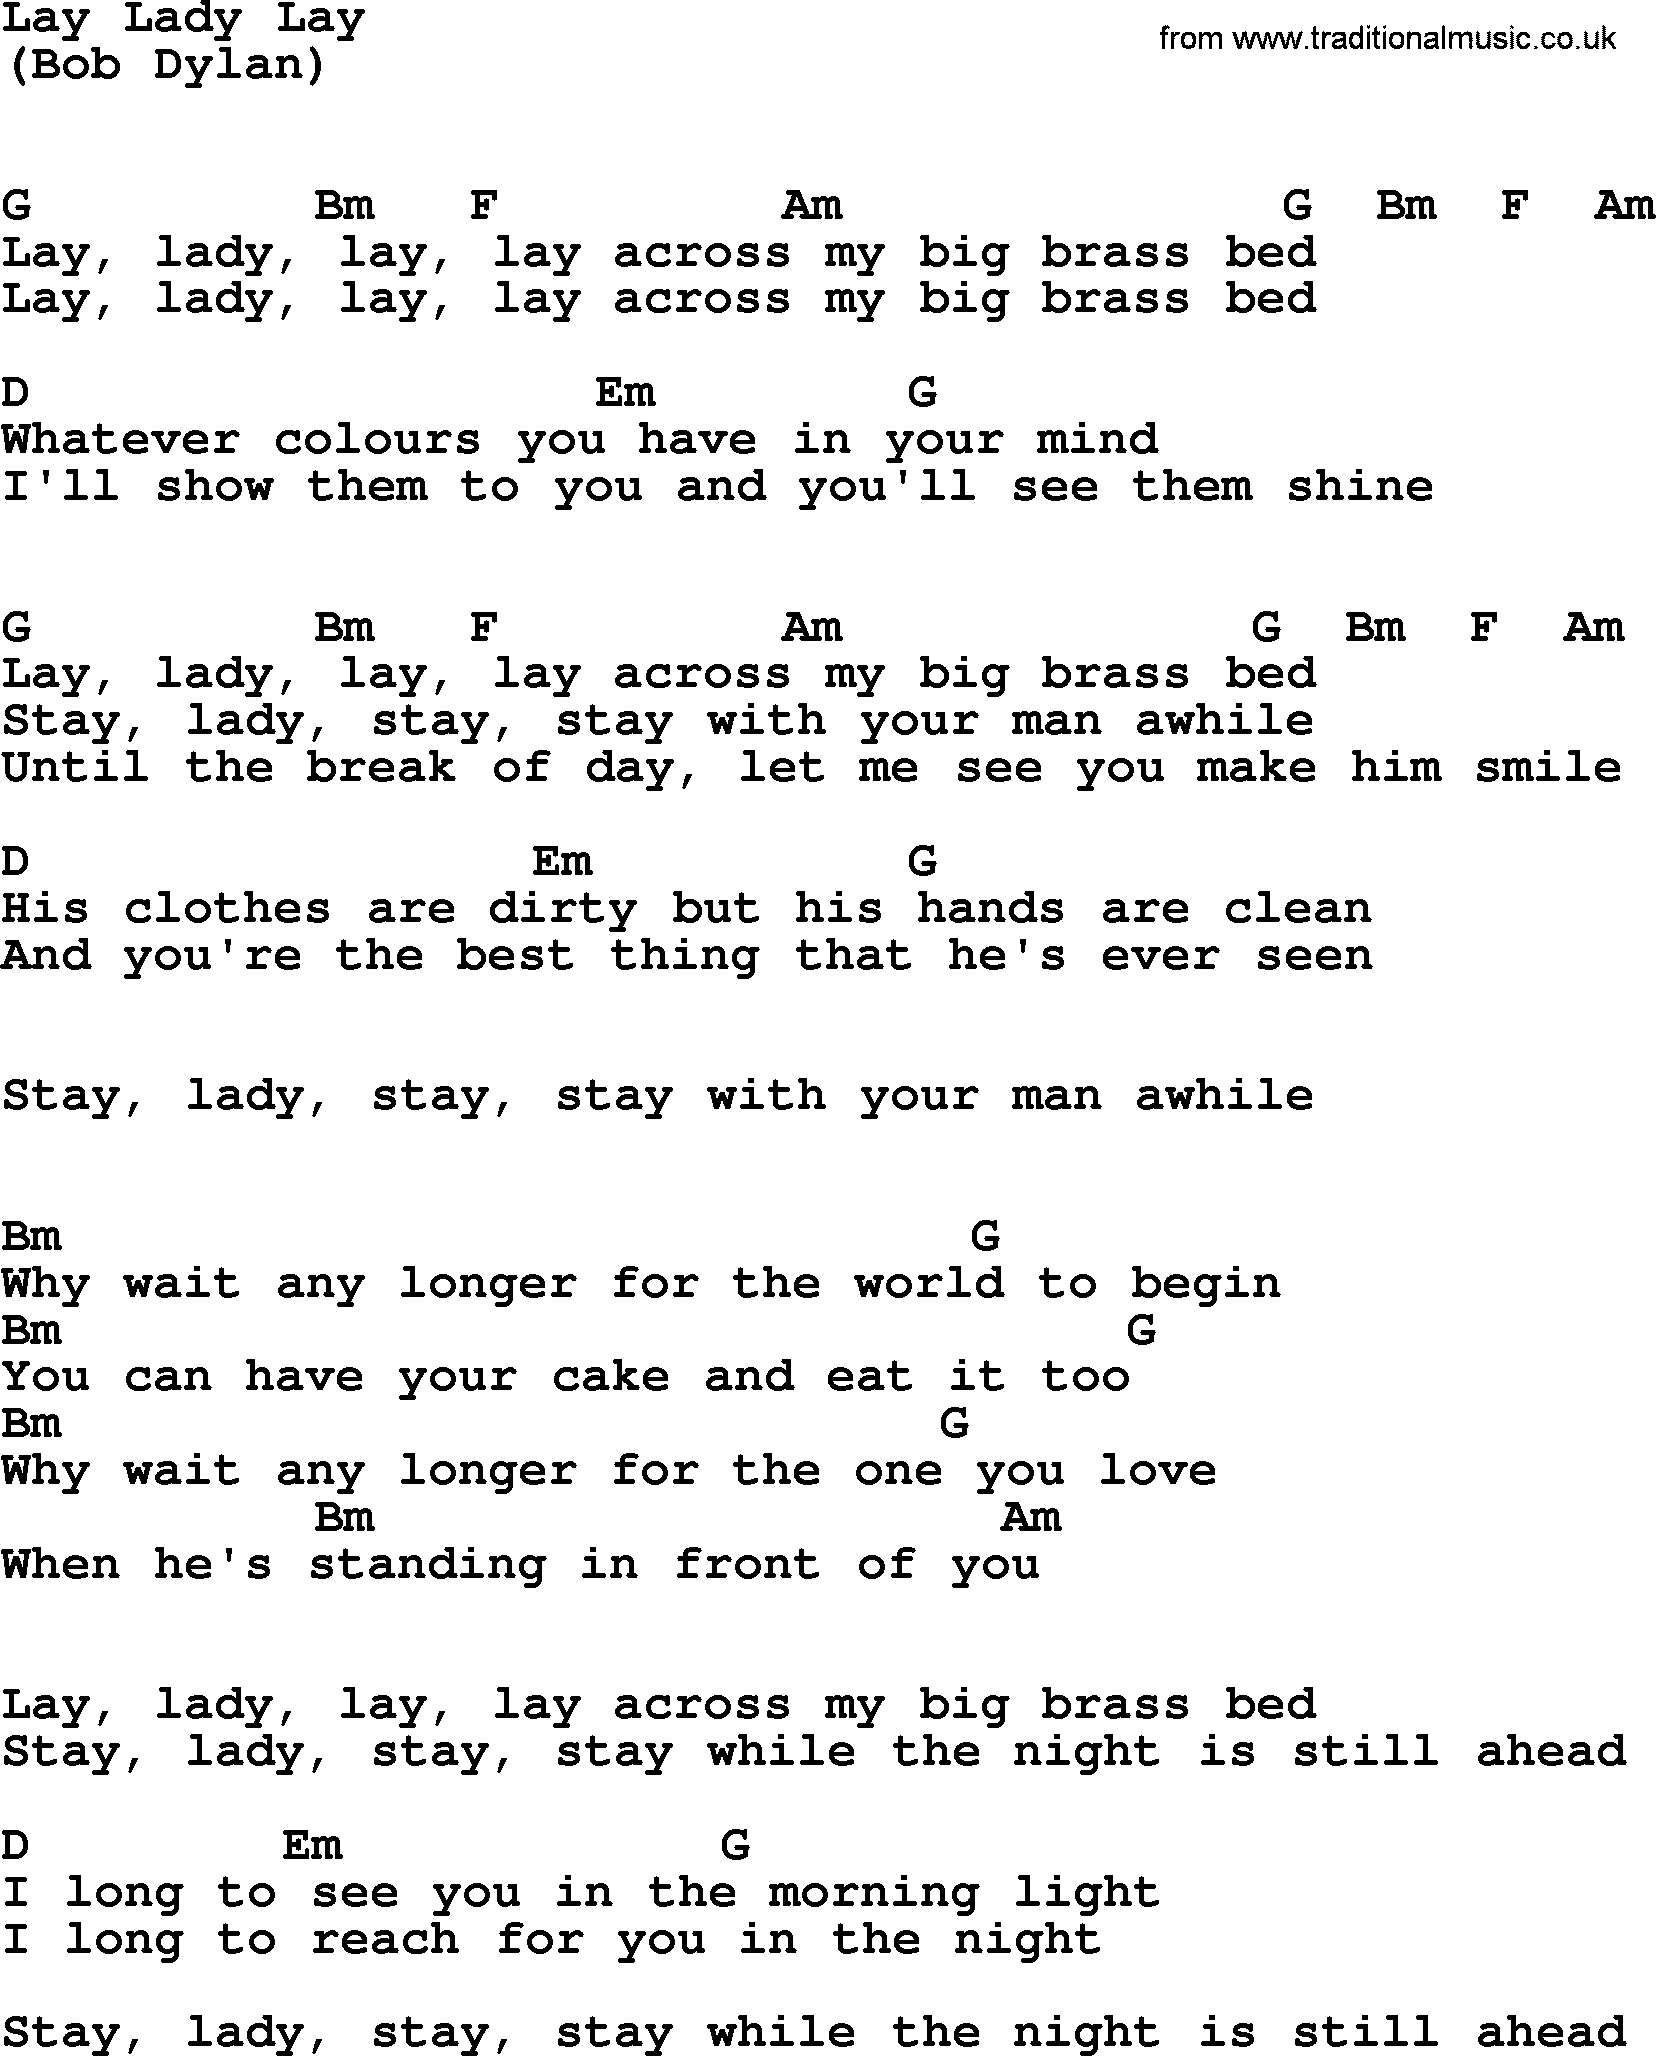 Lay Lady Lay, by The Byrds   lyrics and chords